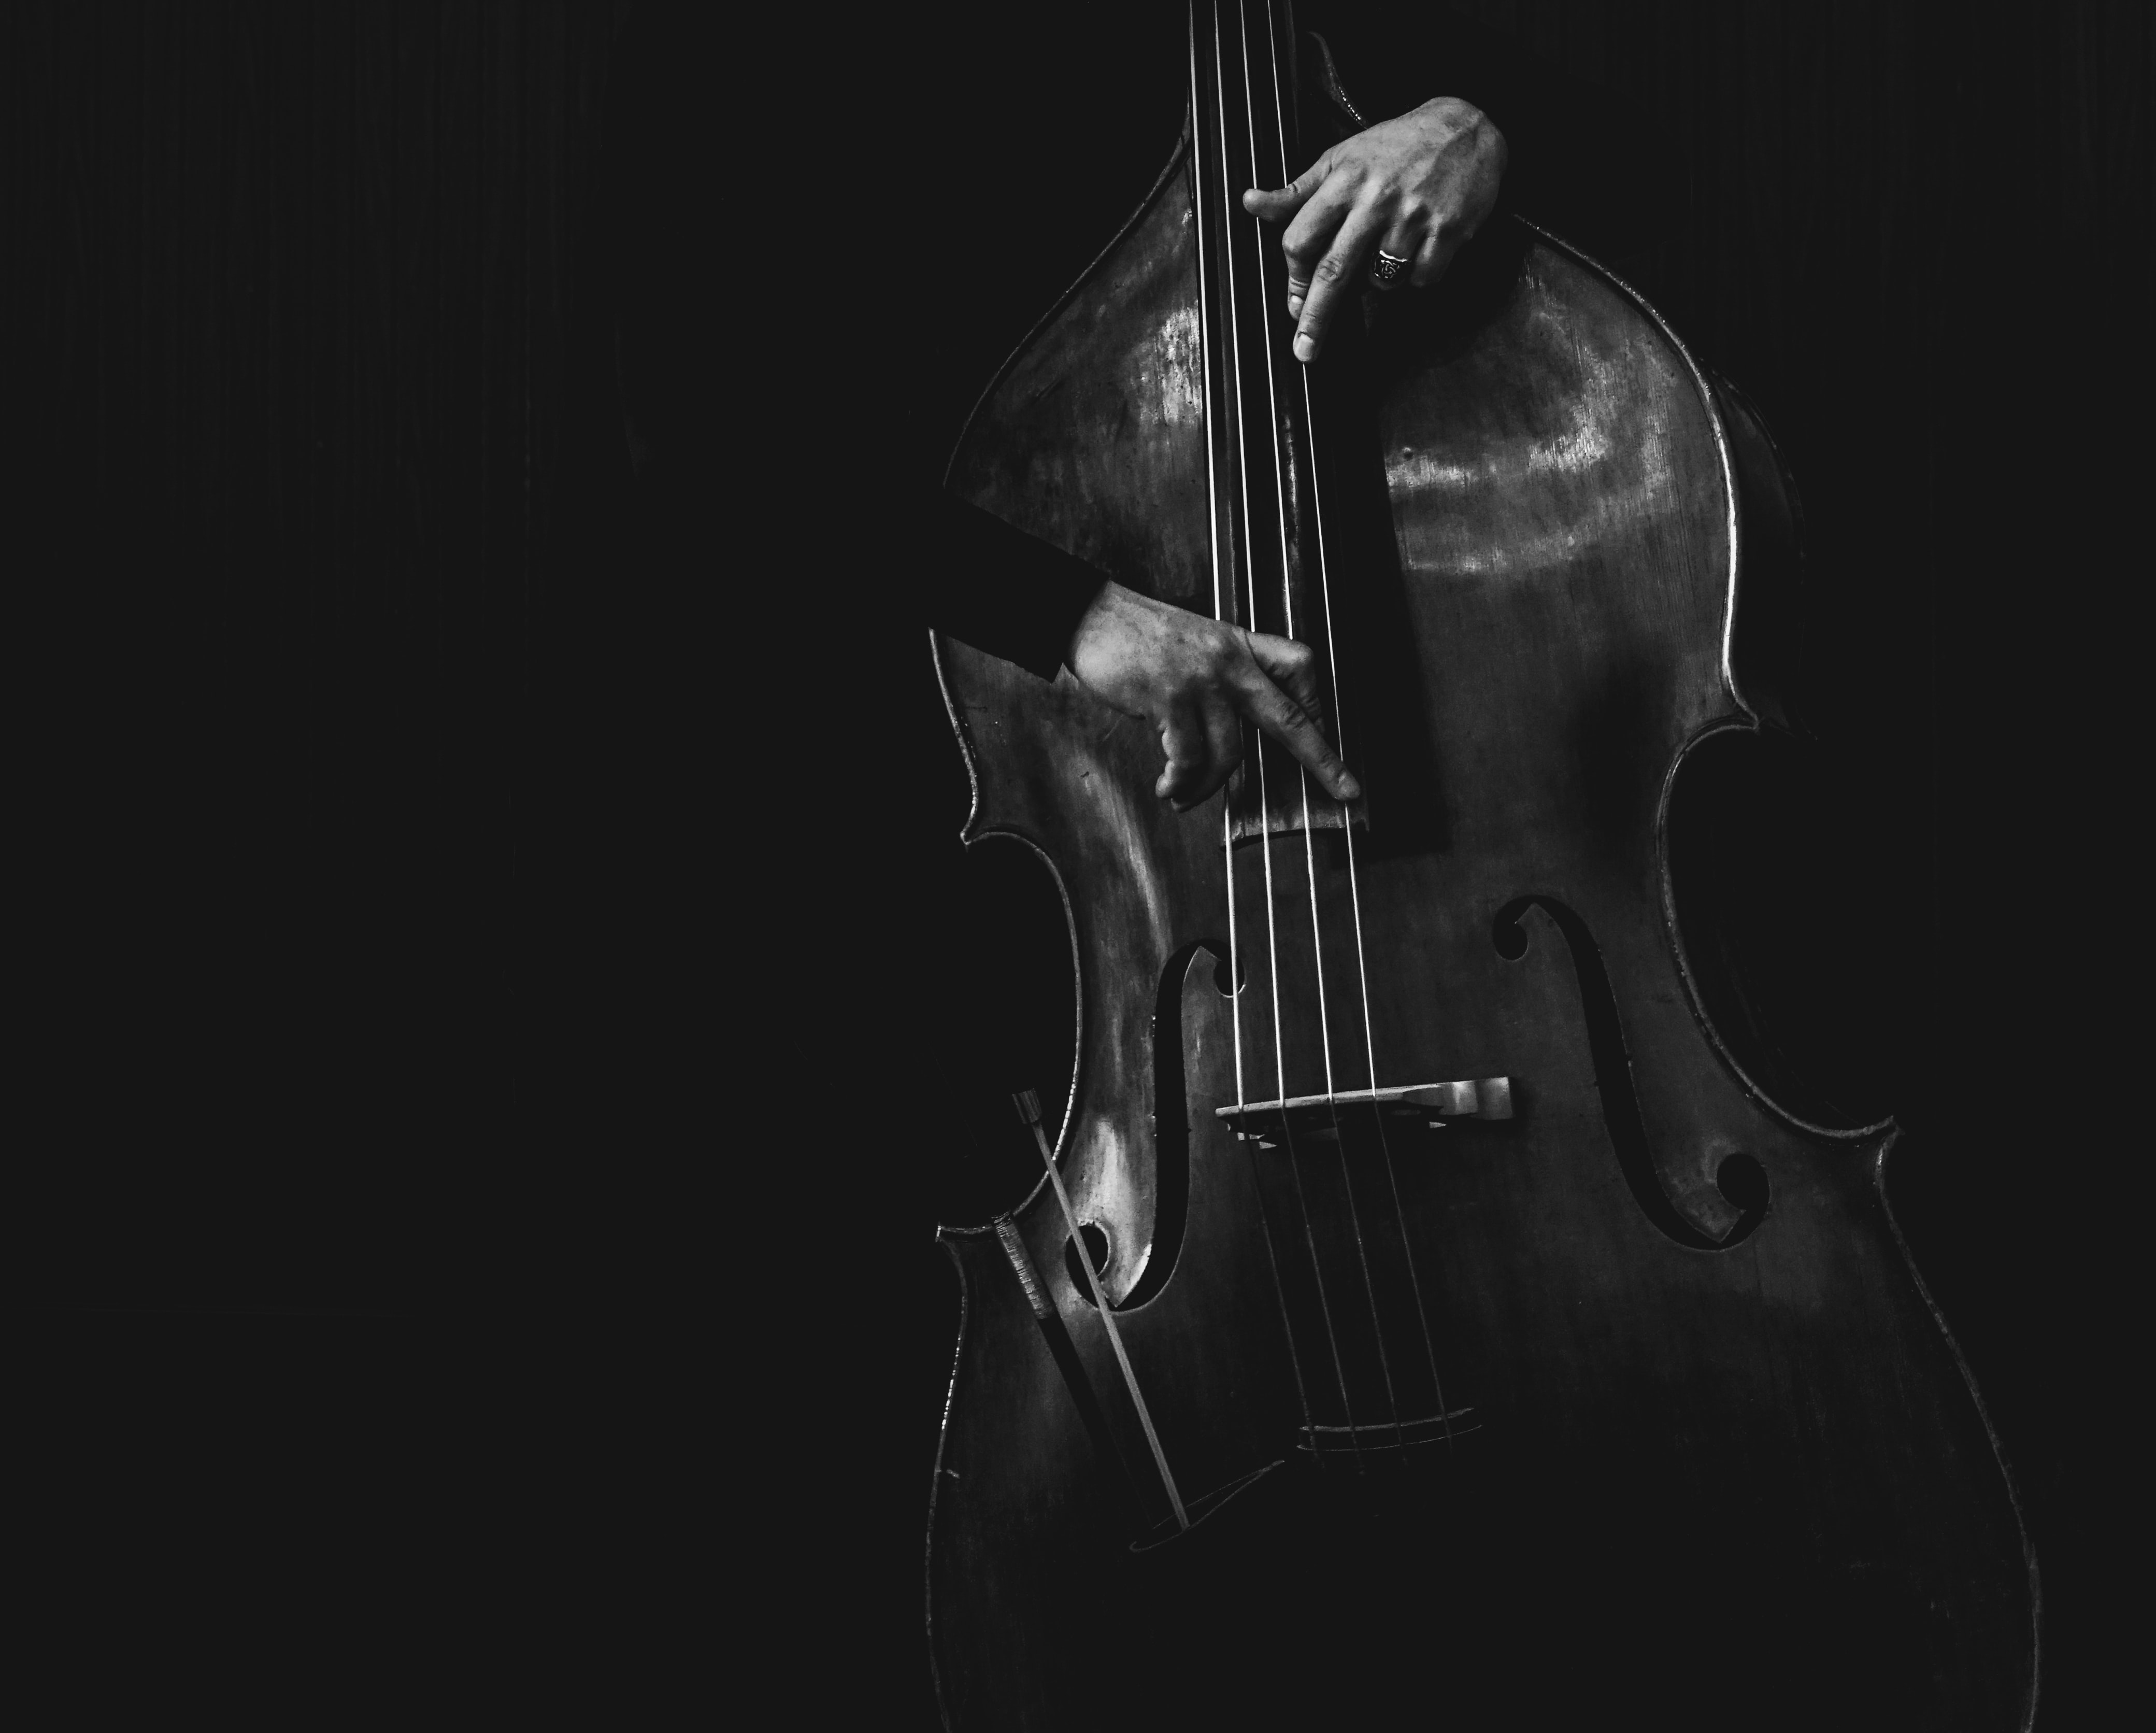 The jazz you listen to today is actually full of sexism – here's the history